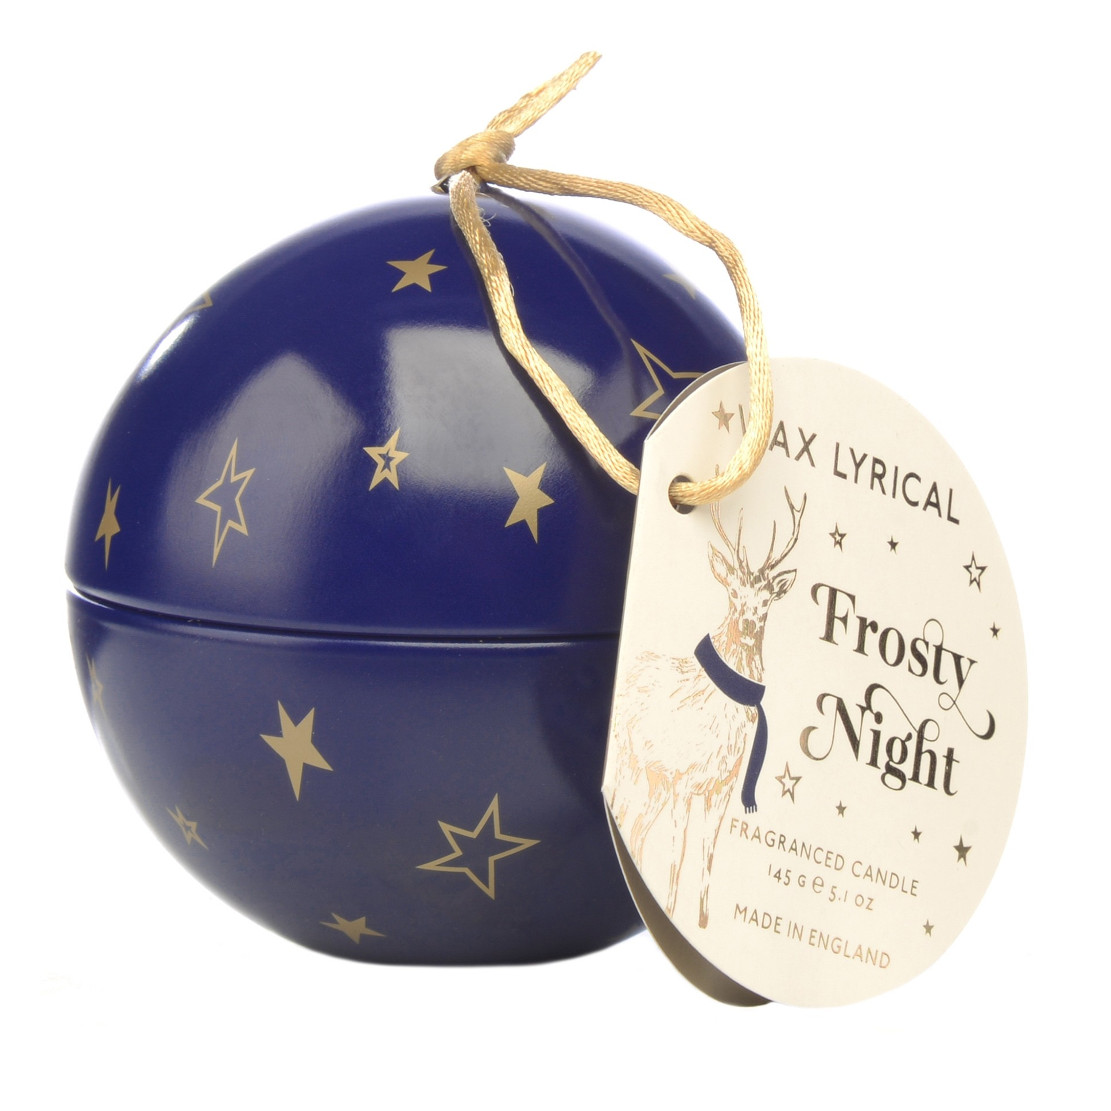 Wax Lyrical Frosty Night Bauble Candle and Cracker Diffuser